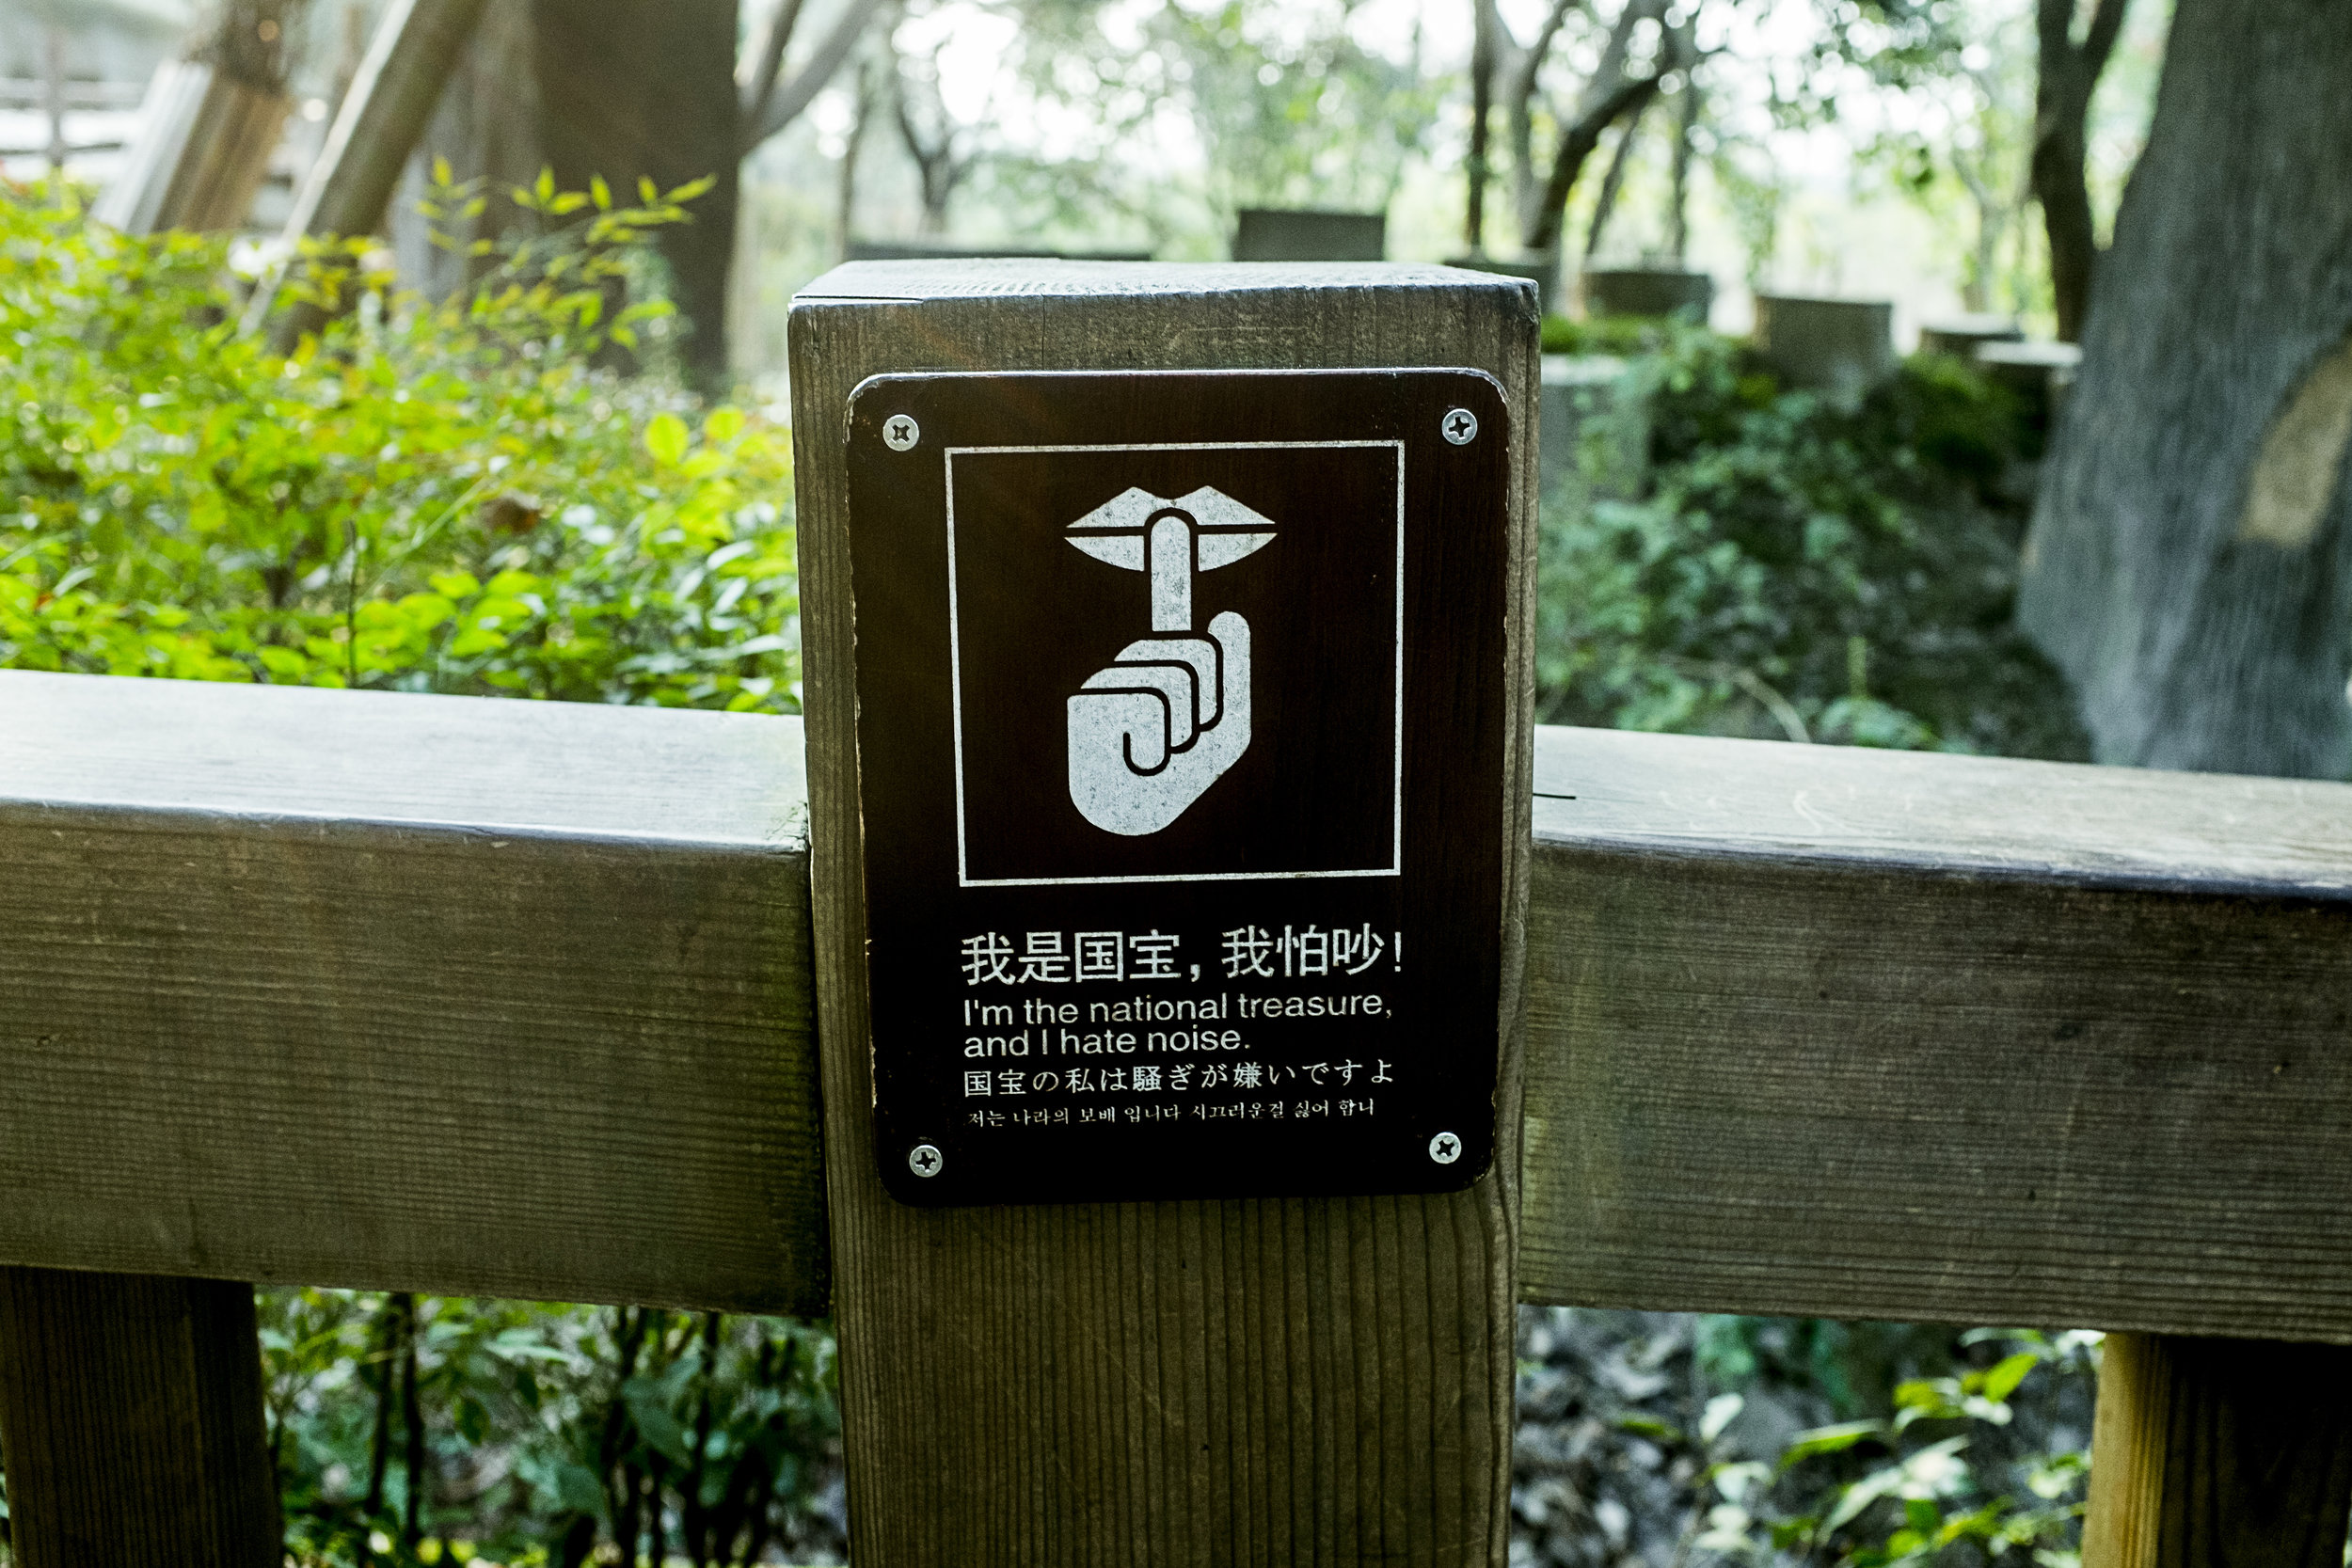 Recent research done on human impact on the Panda in captivity has concluded that Panda has ultrasonic hearing. This research is aimed to give a deeper understanding of how Pandas communicate with each other. Therefore, there are already signs around Pandaparks where the audience is asked to keep the noise level down.